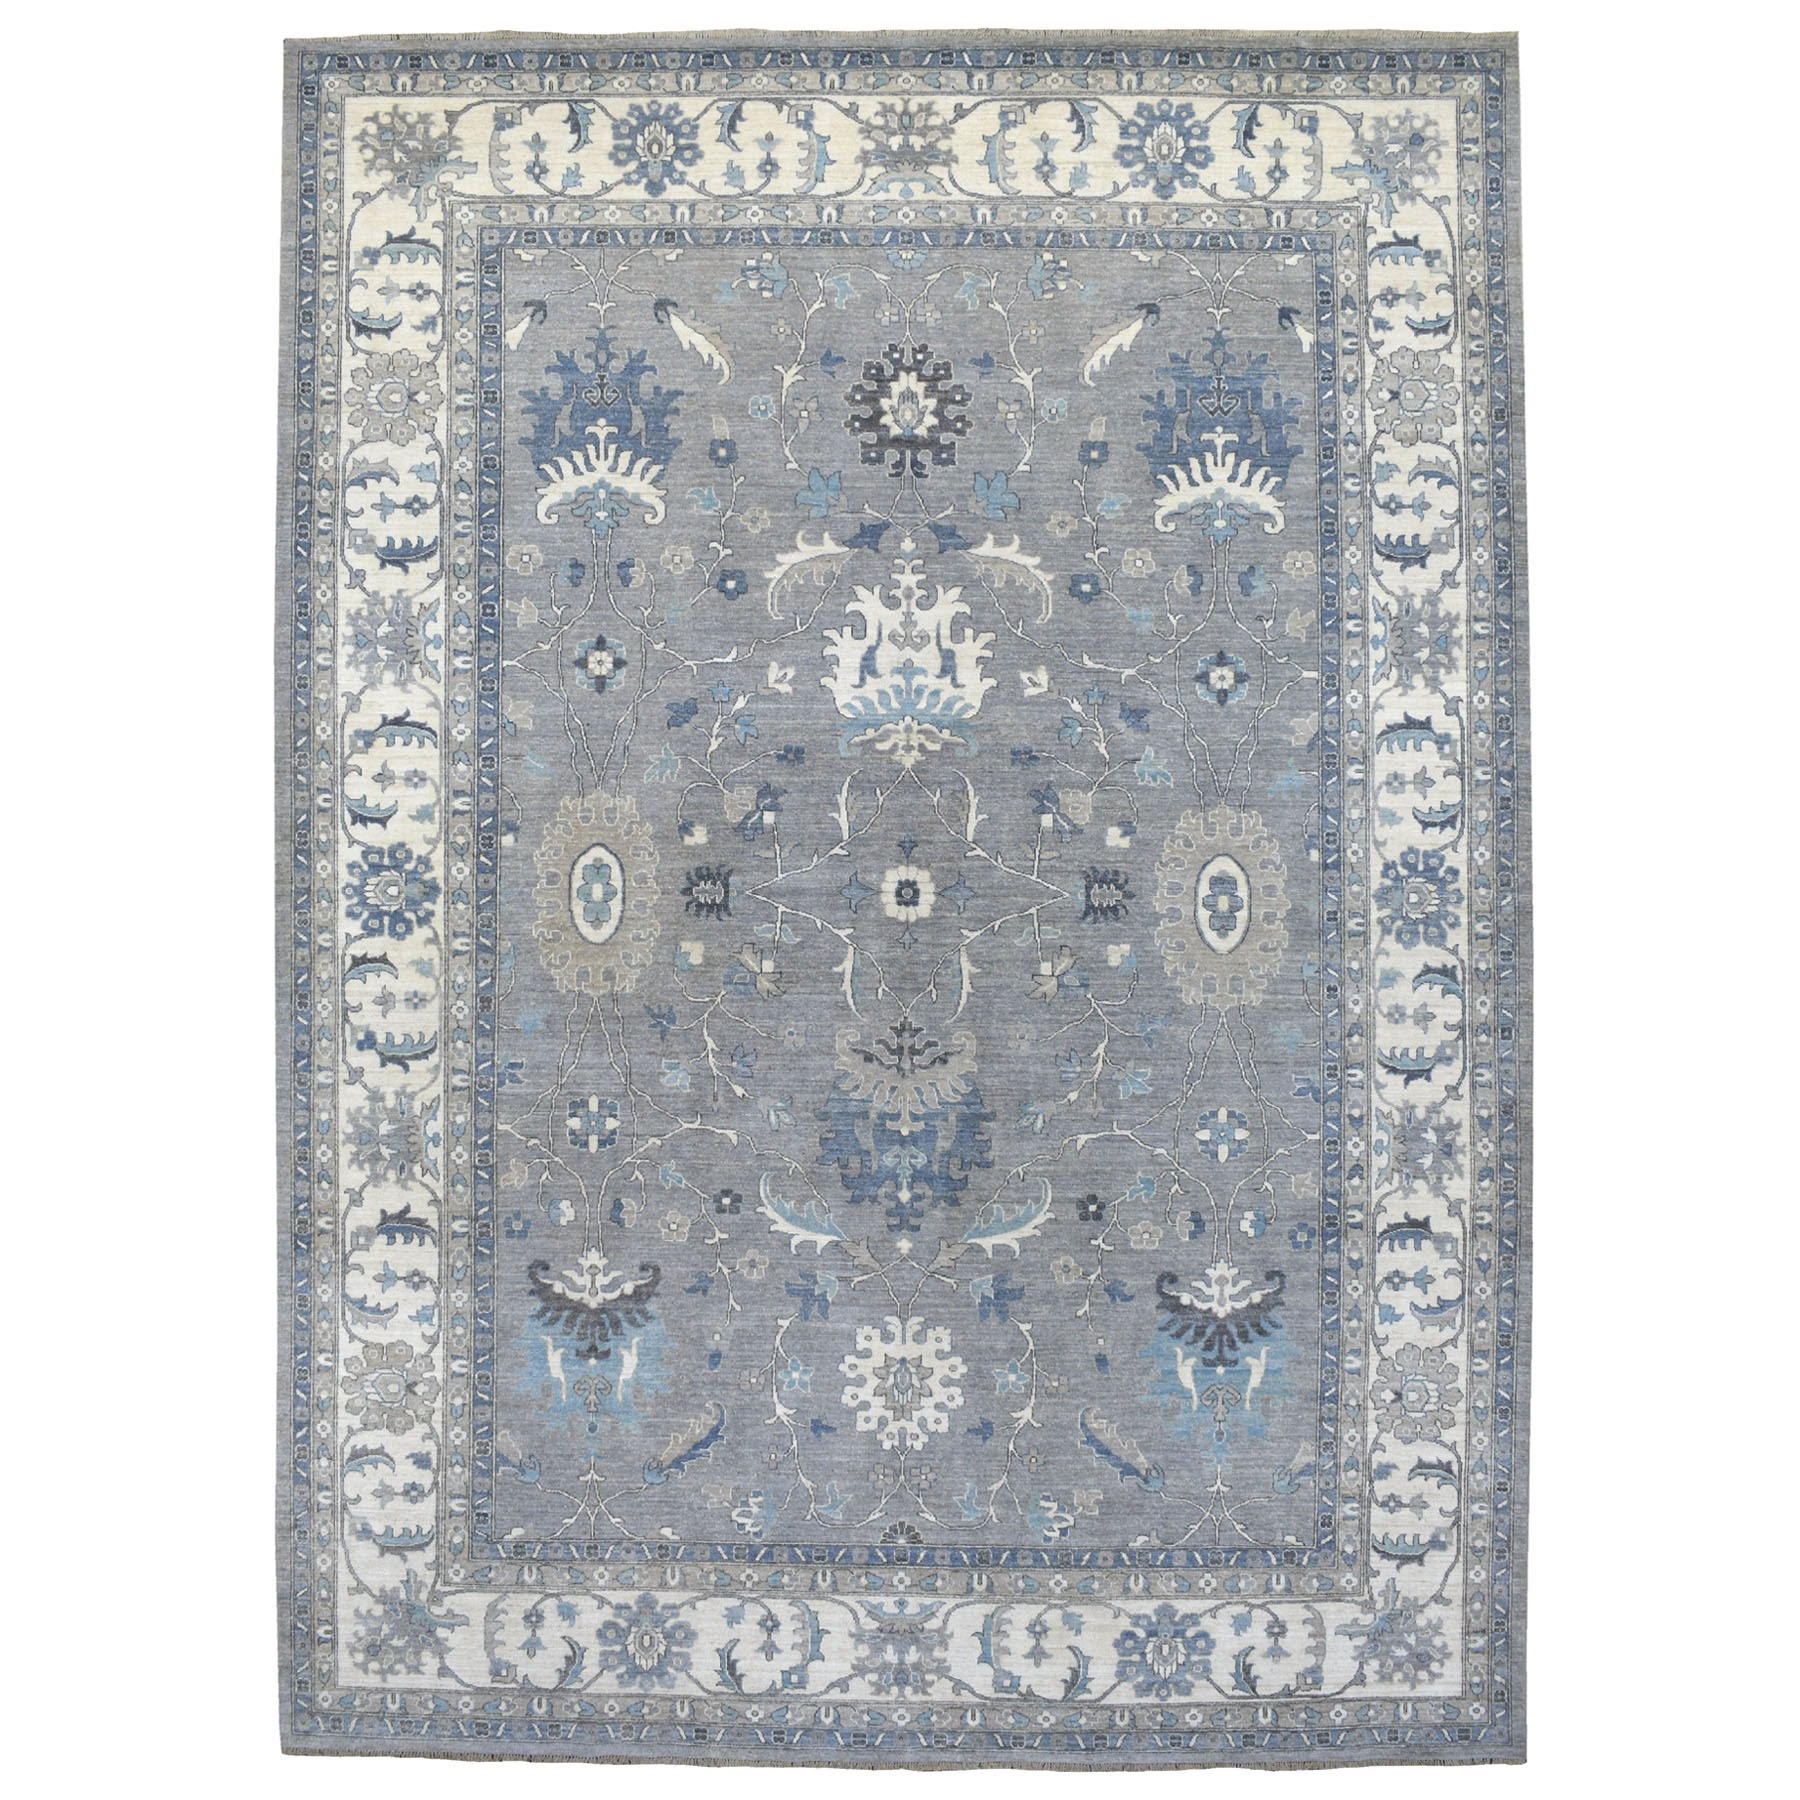 "10'1""x13'9"" Gray Afghan Peshawar with Ziegler Mahal Design Vibrant Wool Hand Knotted Oriental Rug"